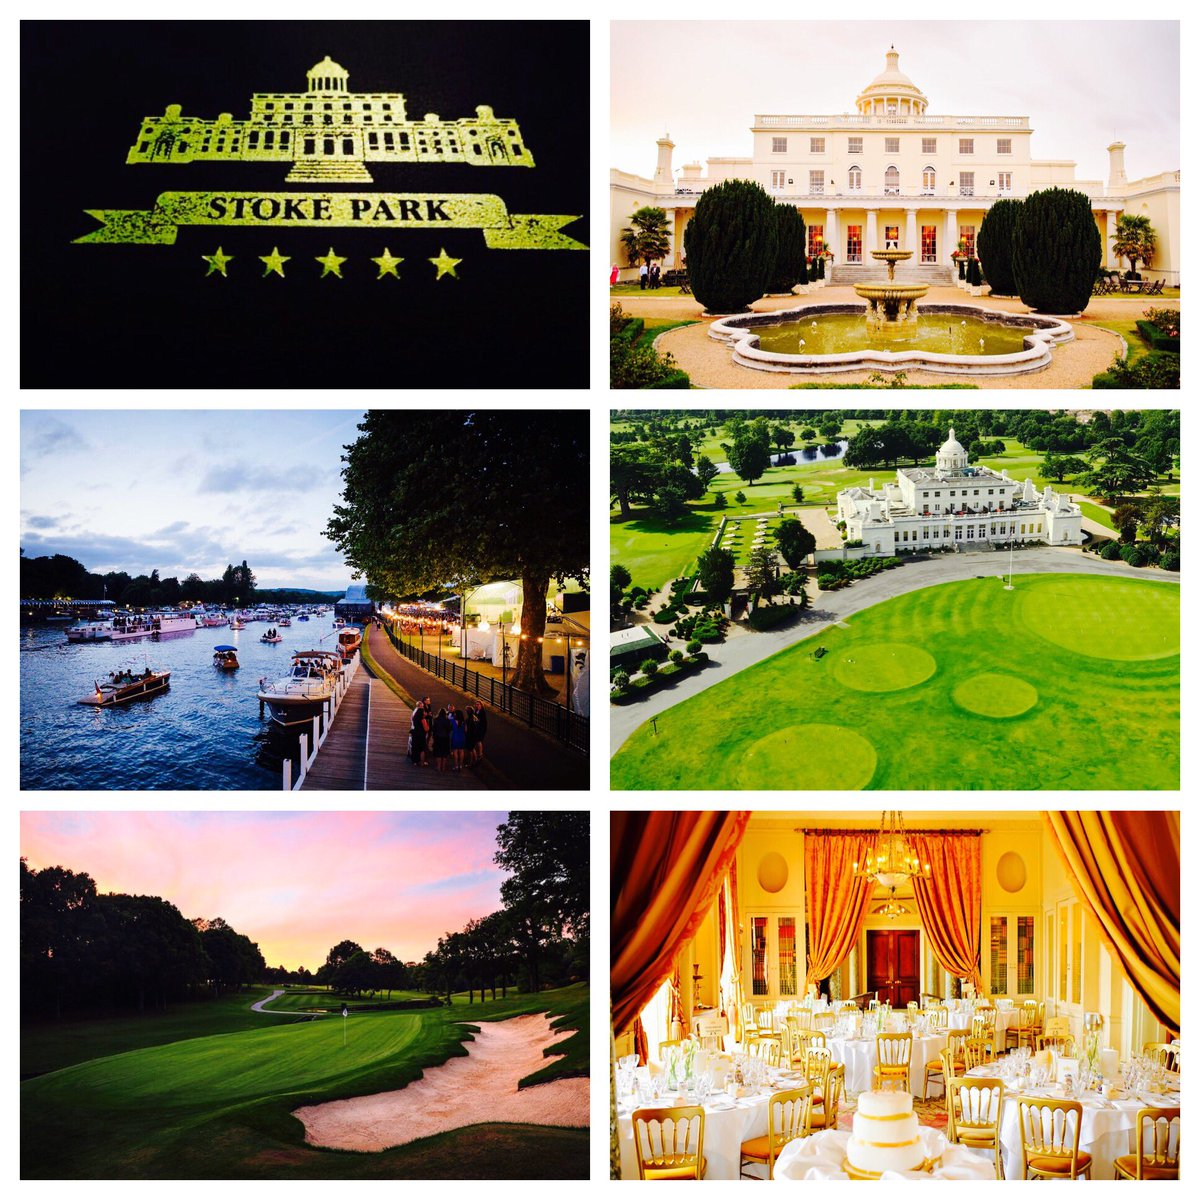 Only 3 days to go #Introbiz #VIP Exclusive #Event at 5star @StokePark with @crowandjester can&#39;t wait for weekend  http://www. introbiz.co.uk/cardiff-busine ss-networking-events-wales/diary/ &nbsp; … <br>http://pic.twitter.com/SavUXkAF59